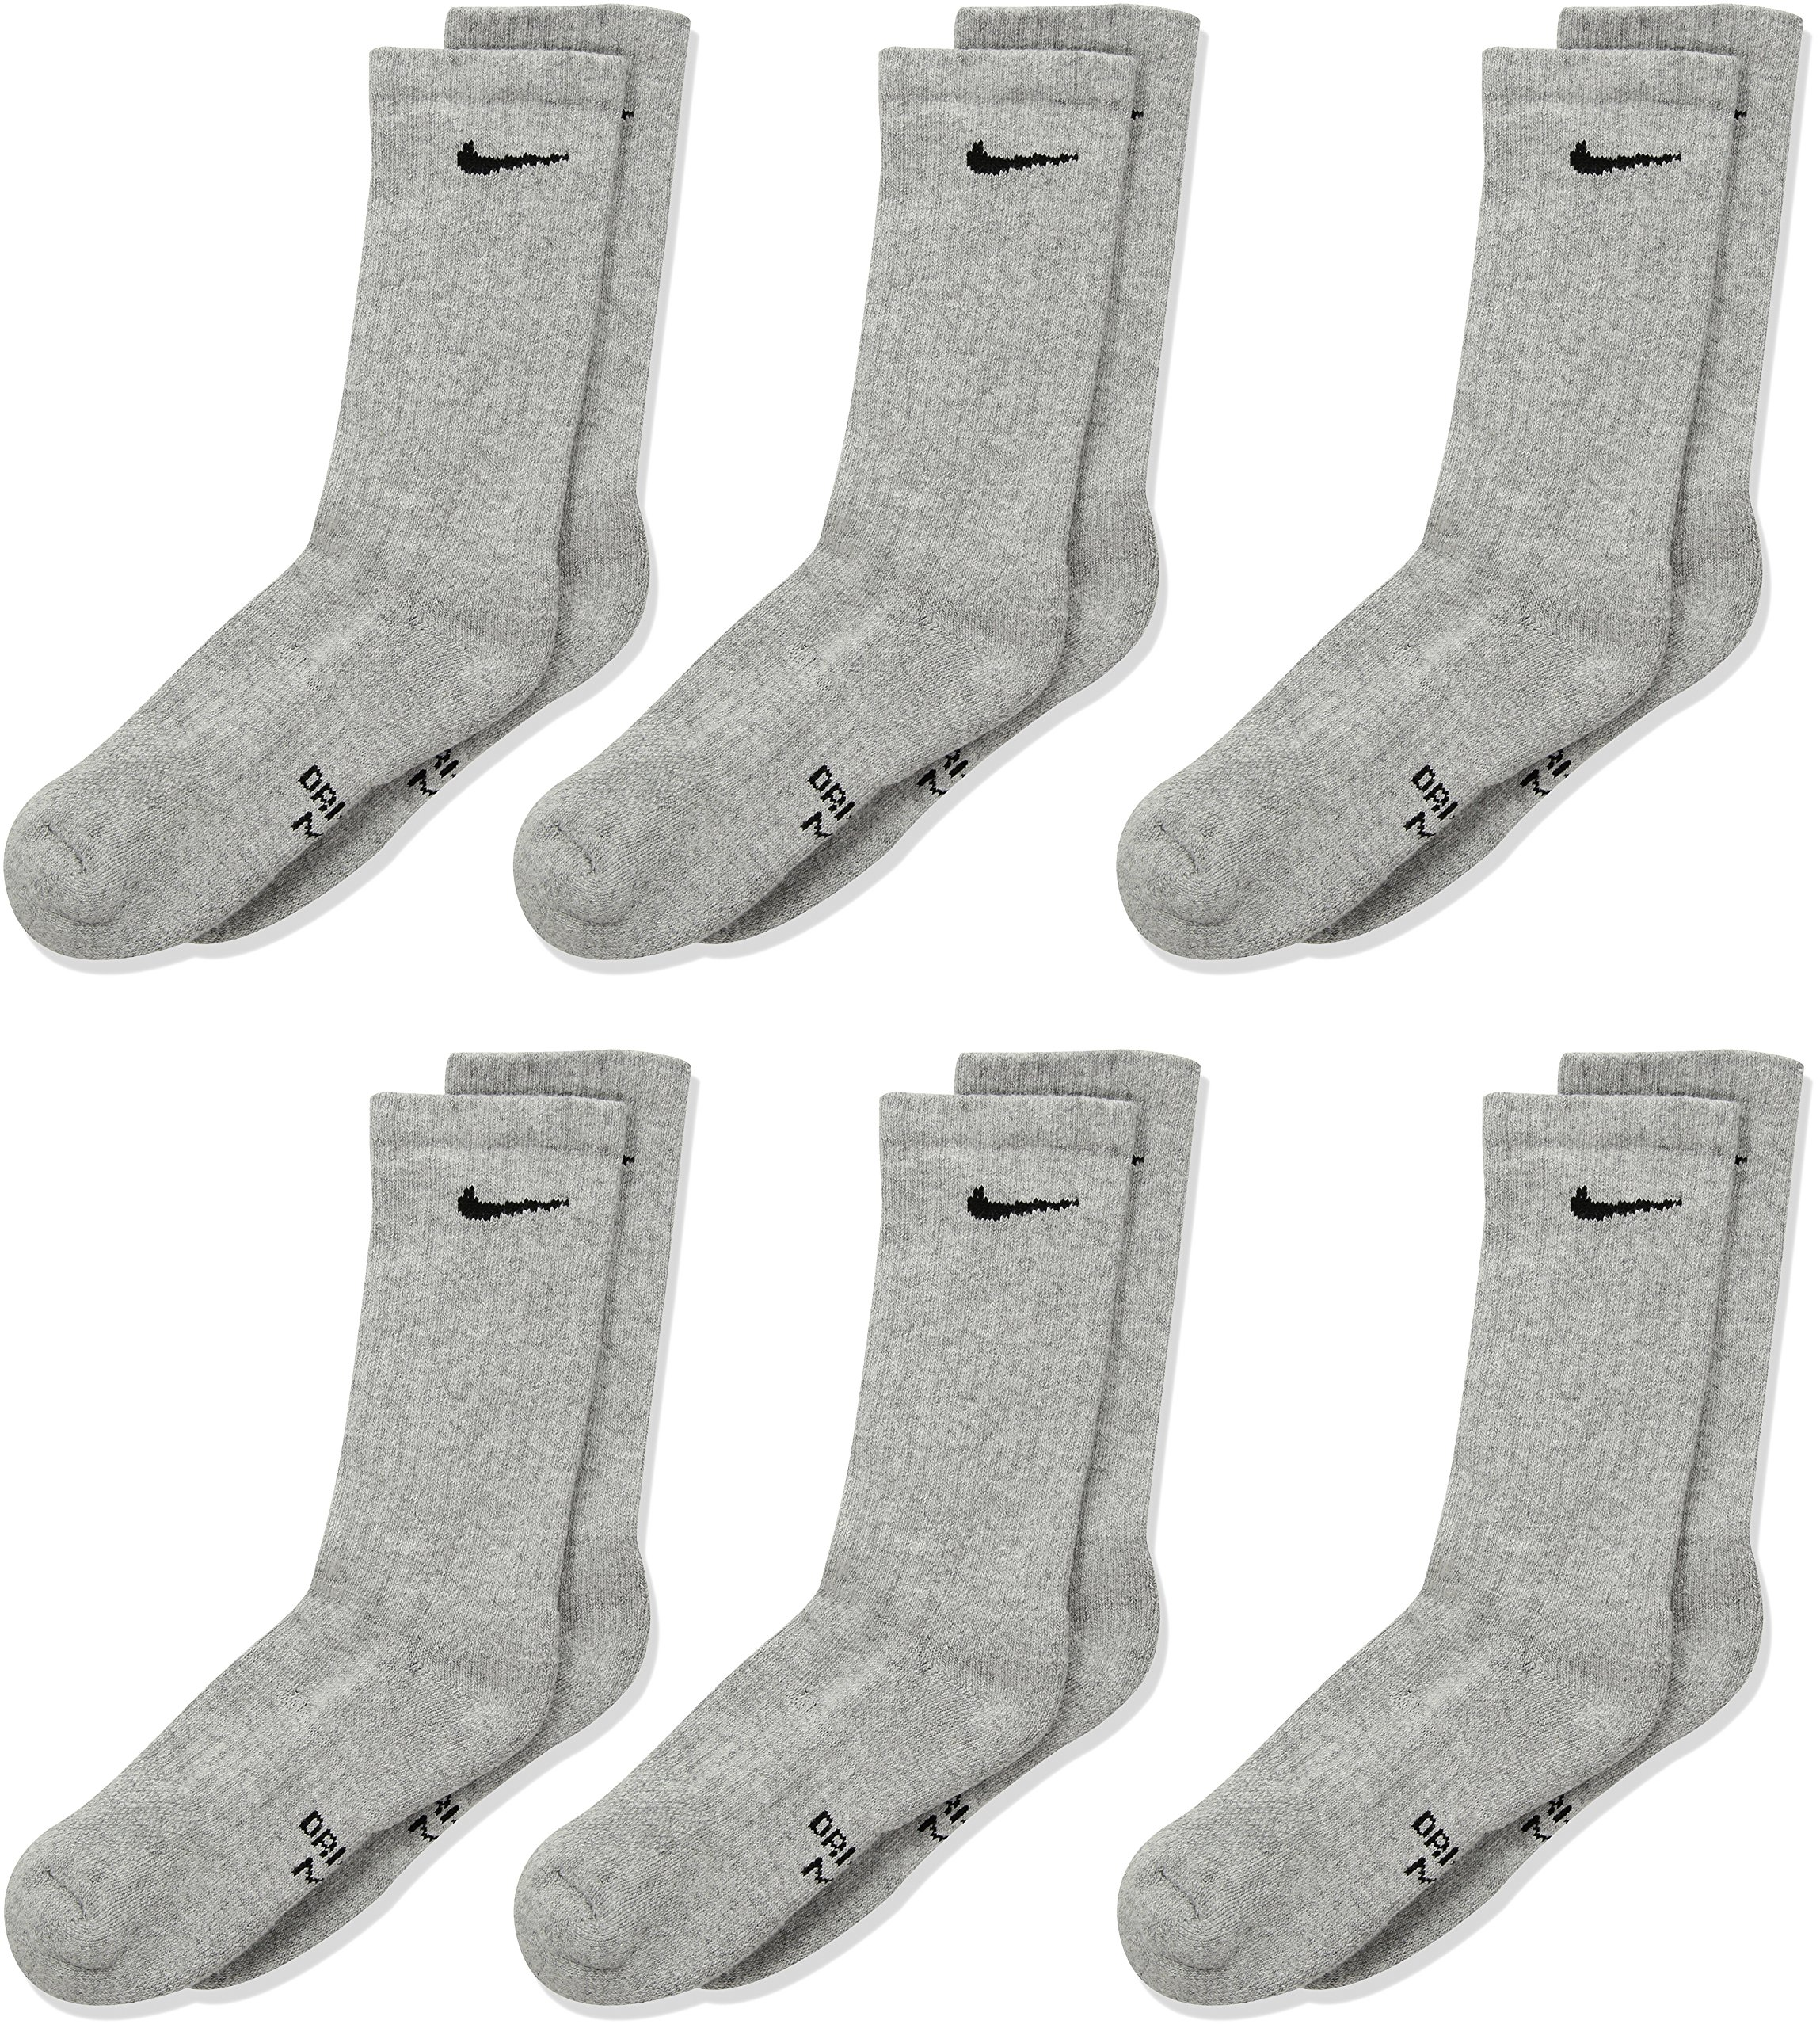 NIKE Kids' Unisex Everyday Cushion Crew Socks (6 Pairs), Dark Grey Heather/Black, Small